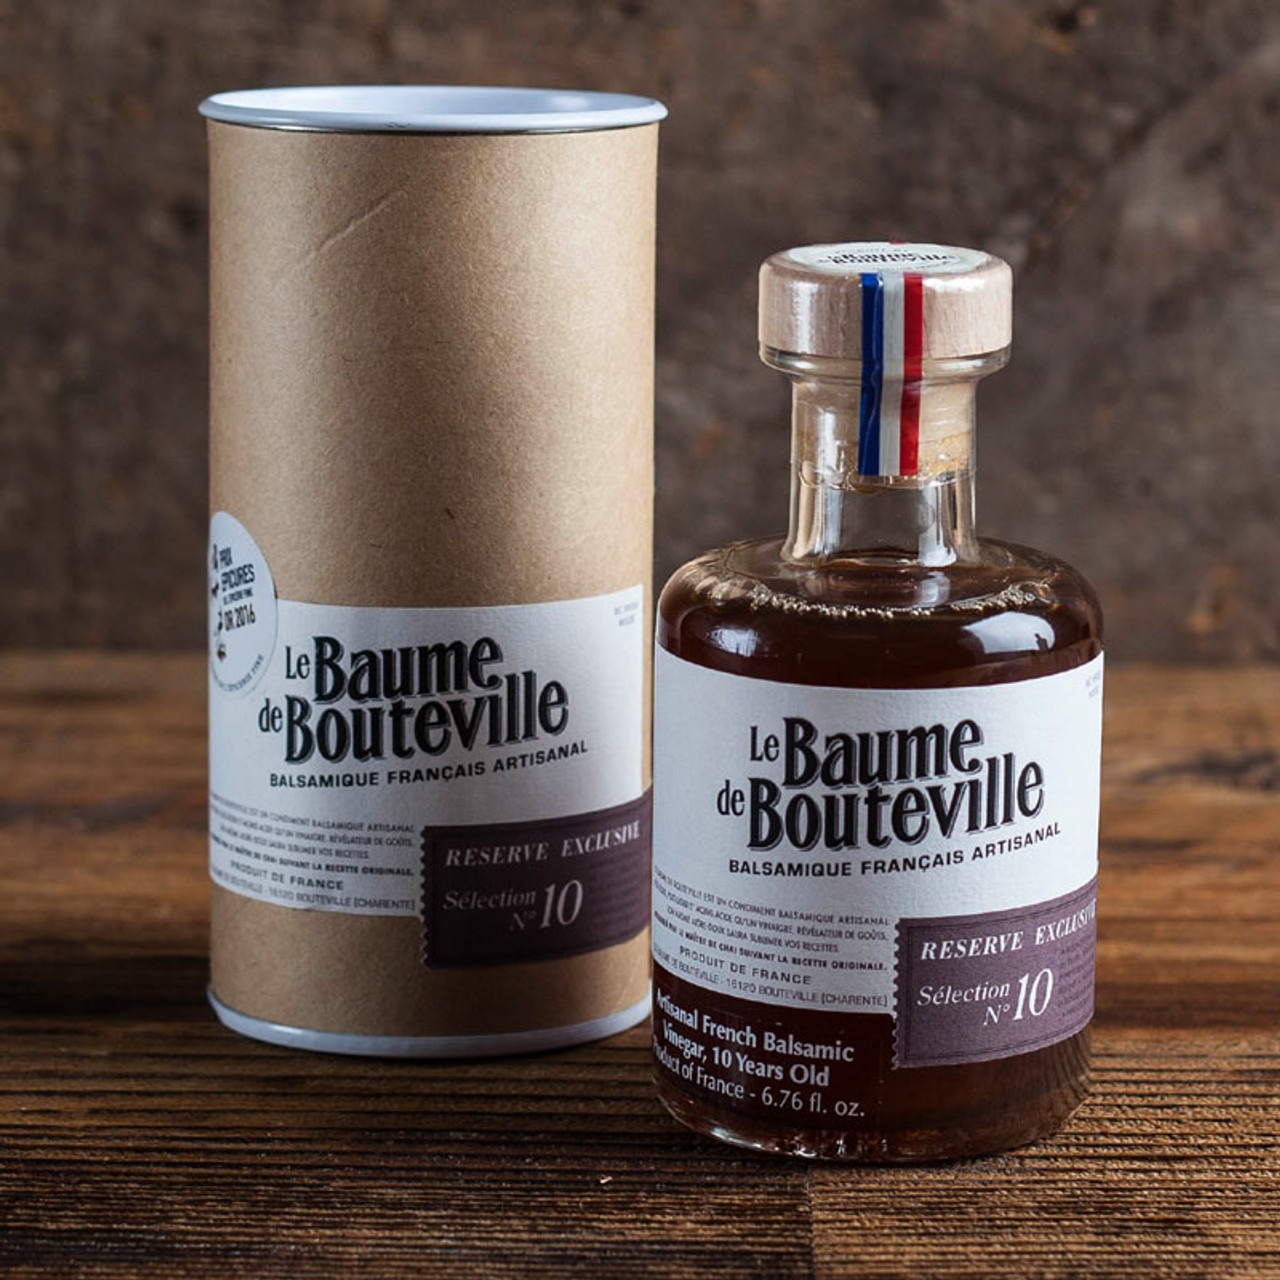 Le Baume de Bouteville 10 Year Aged French Balsamic Vinegar  b56e2235b2